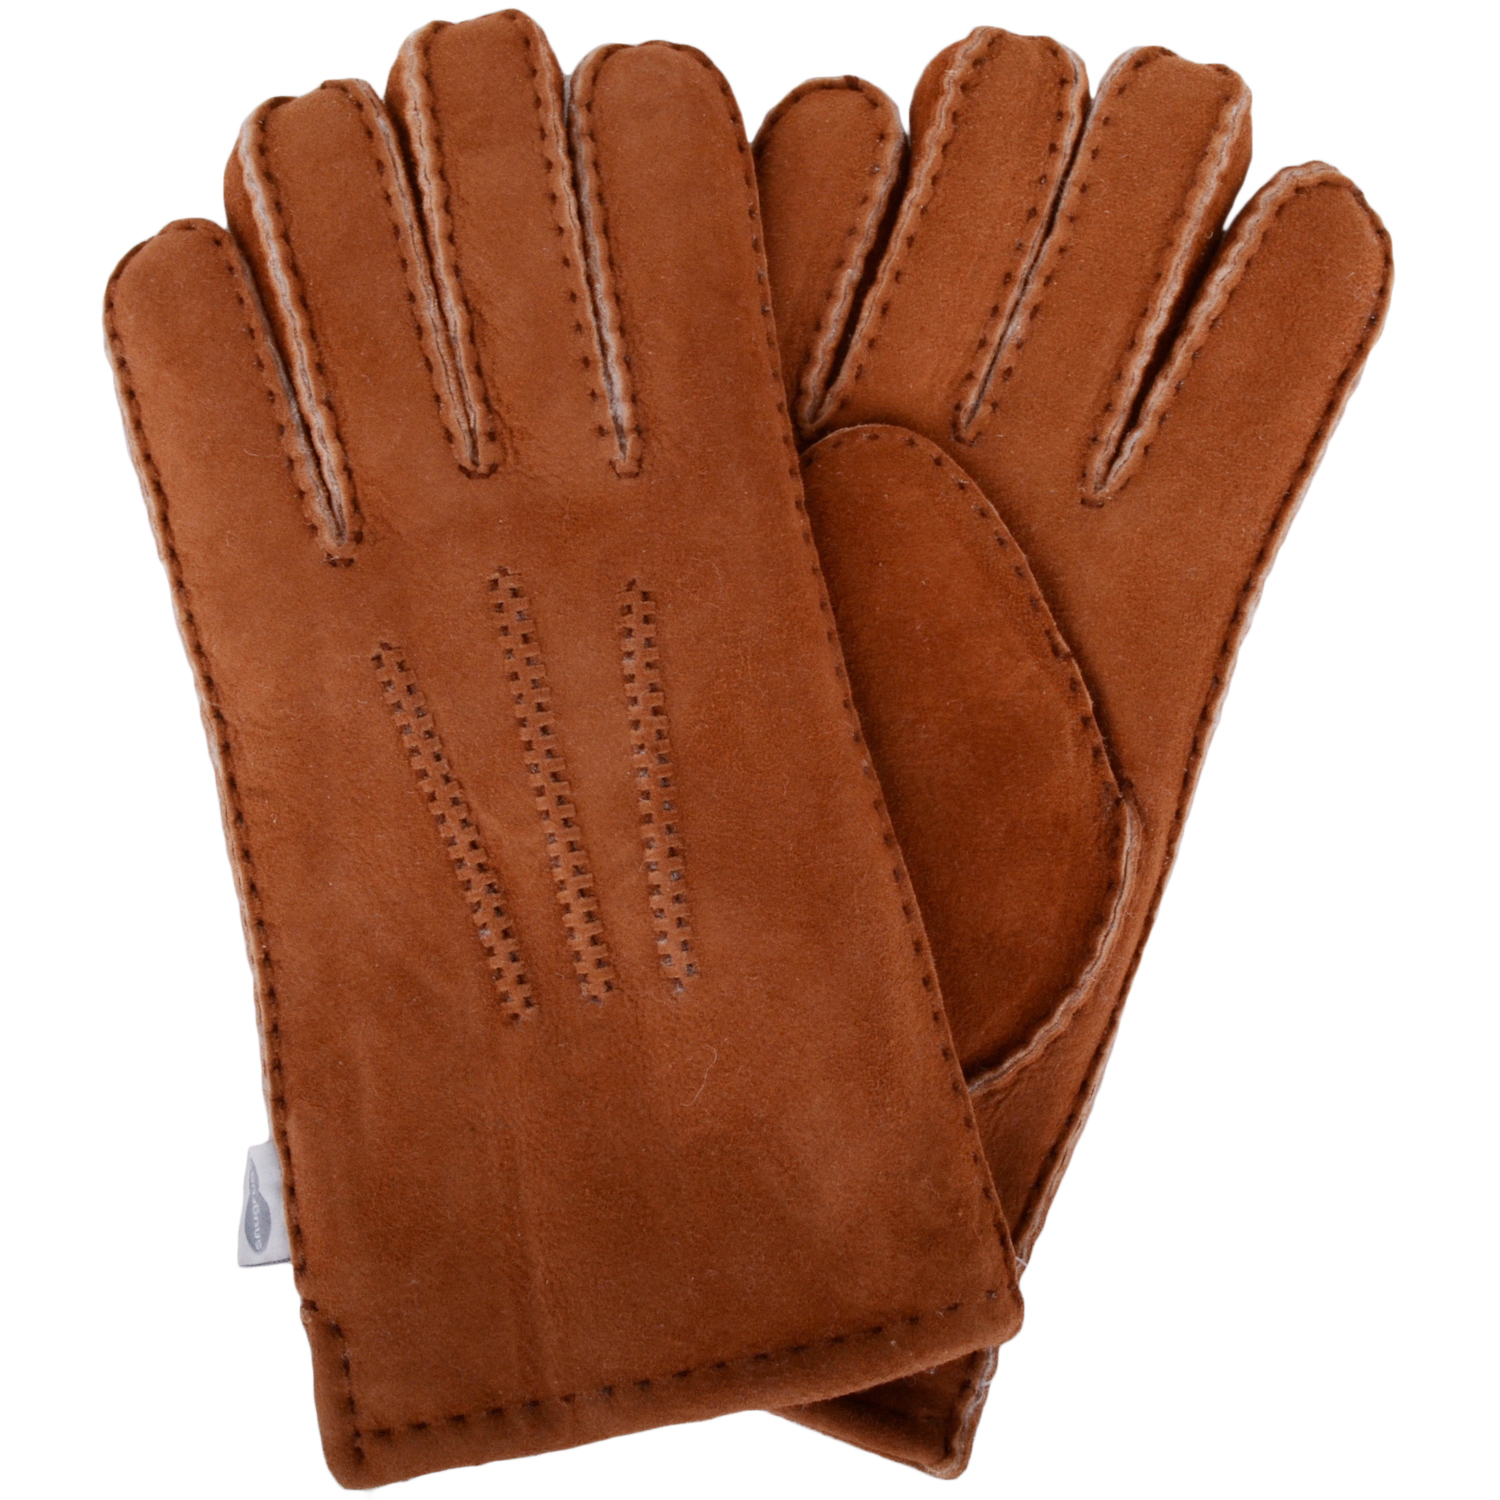 Full Sheepskin Gloves - Tan